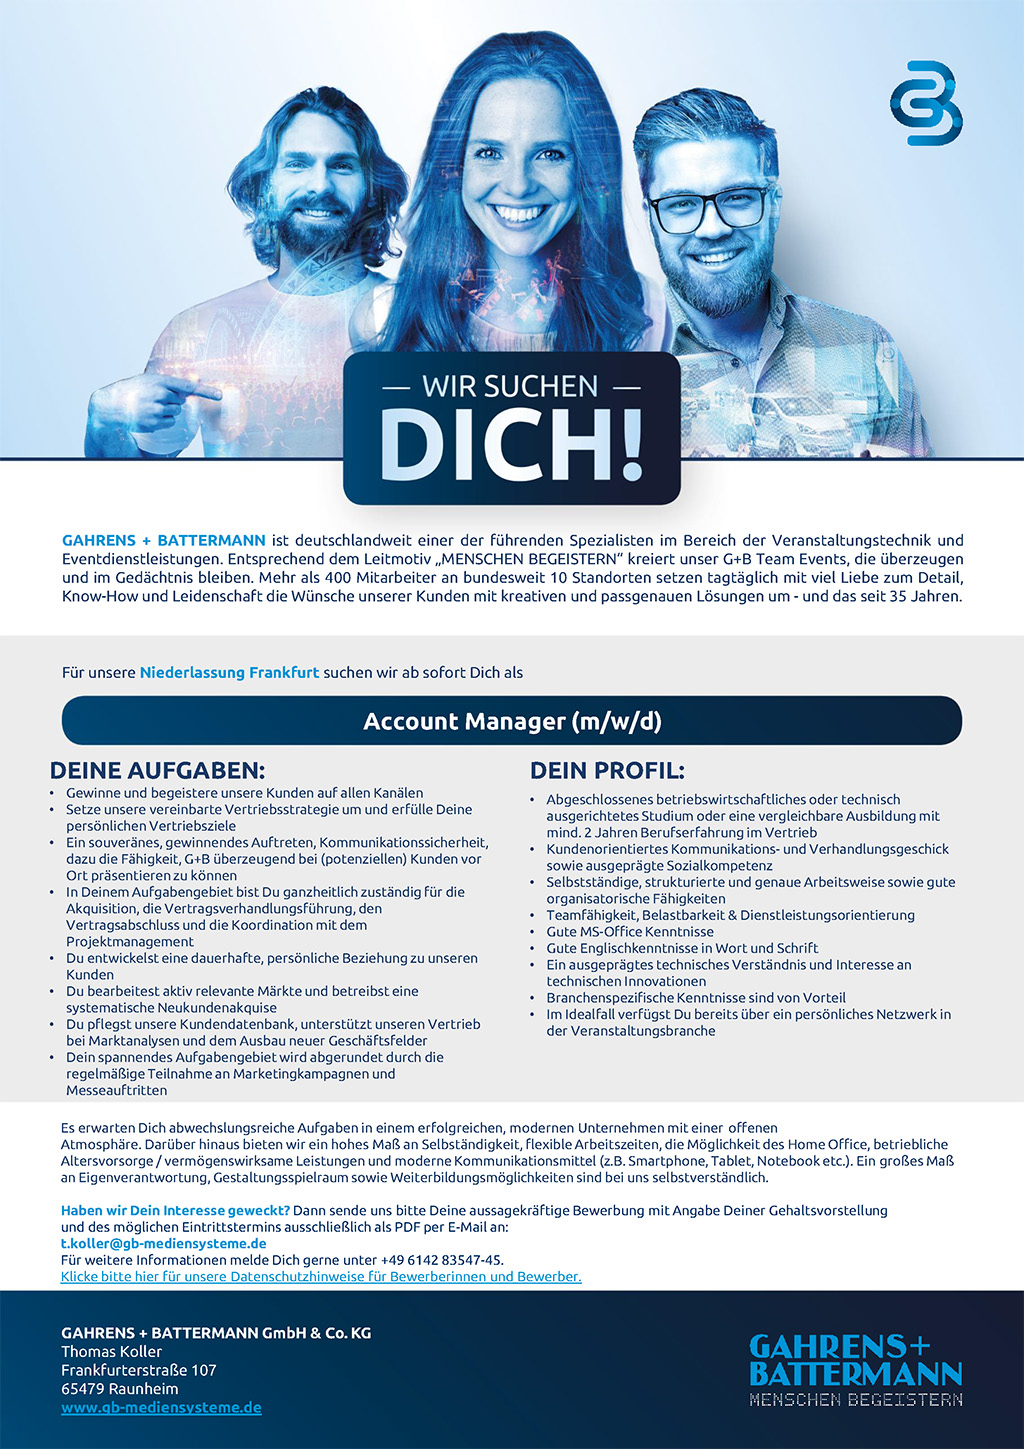 G+B sucht Account Manager in Frankfurt